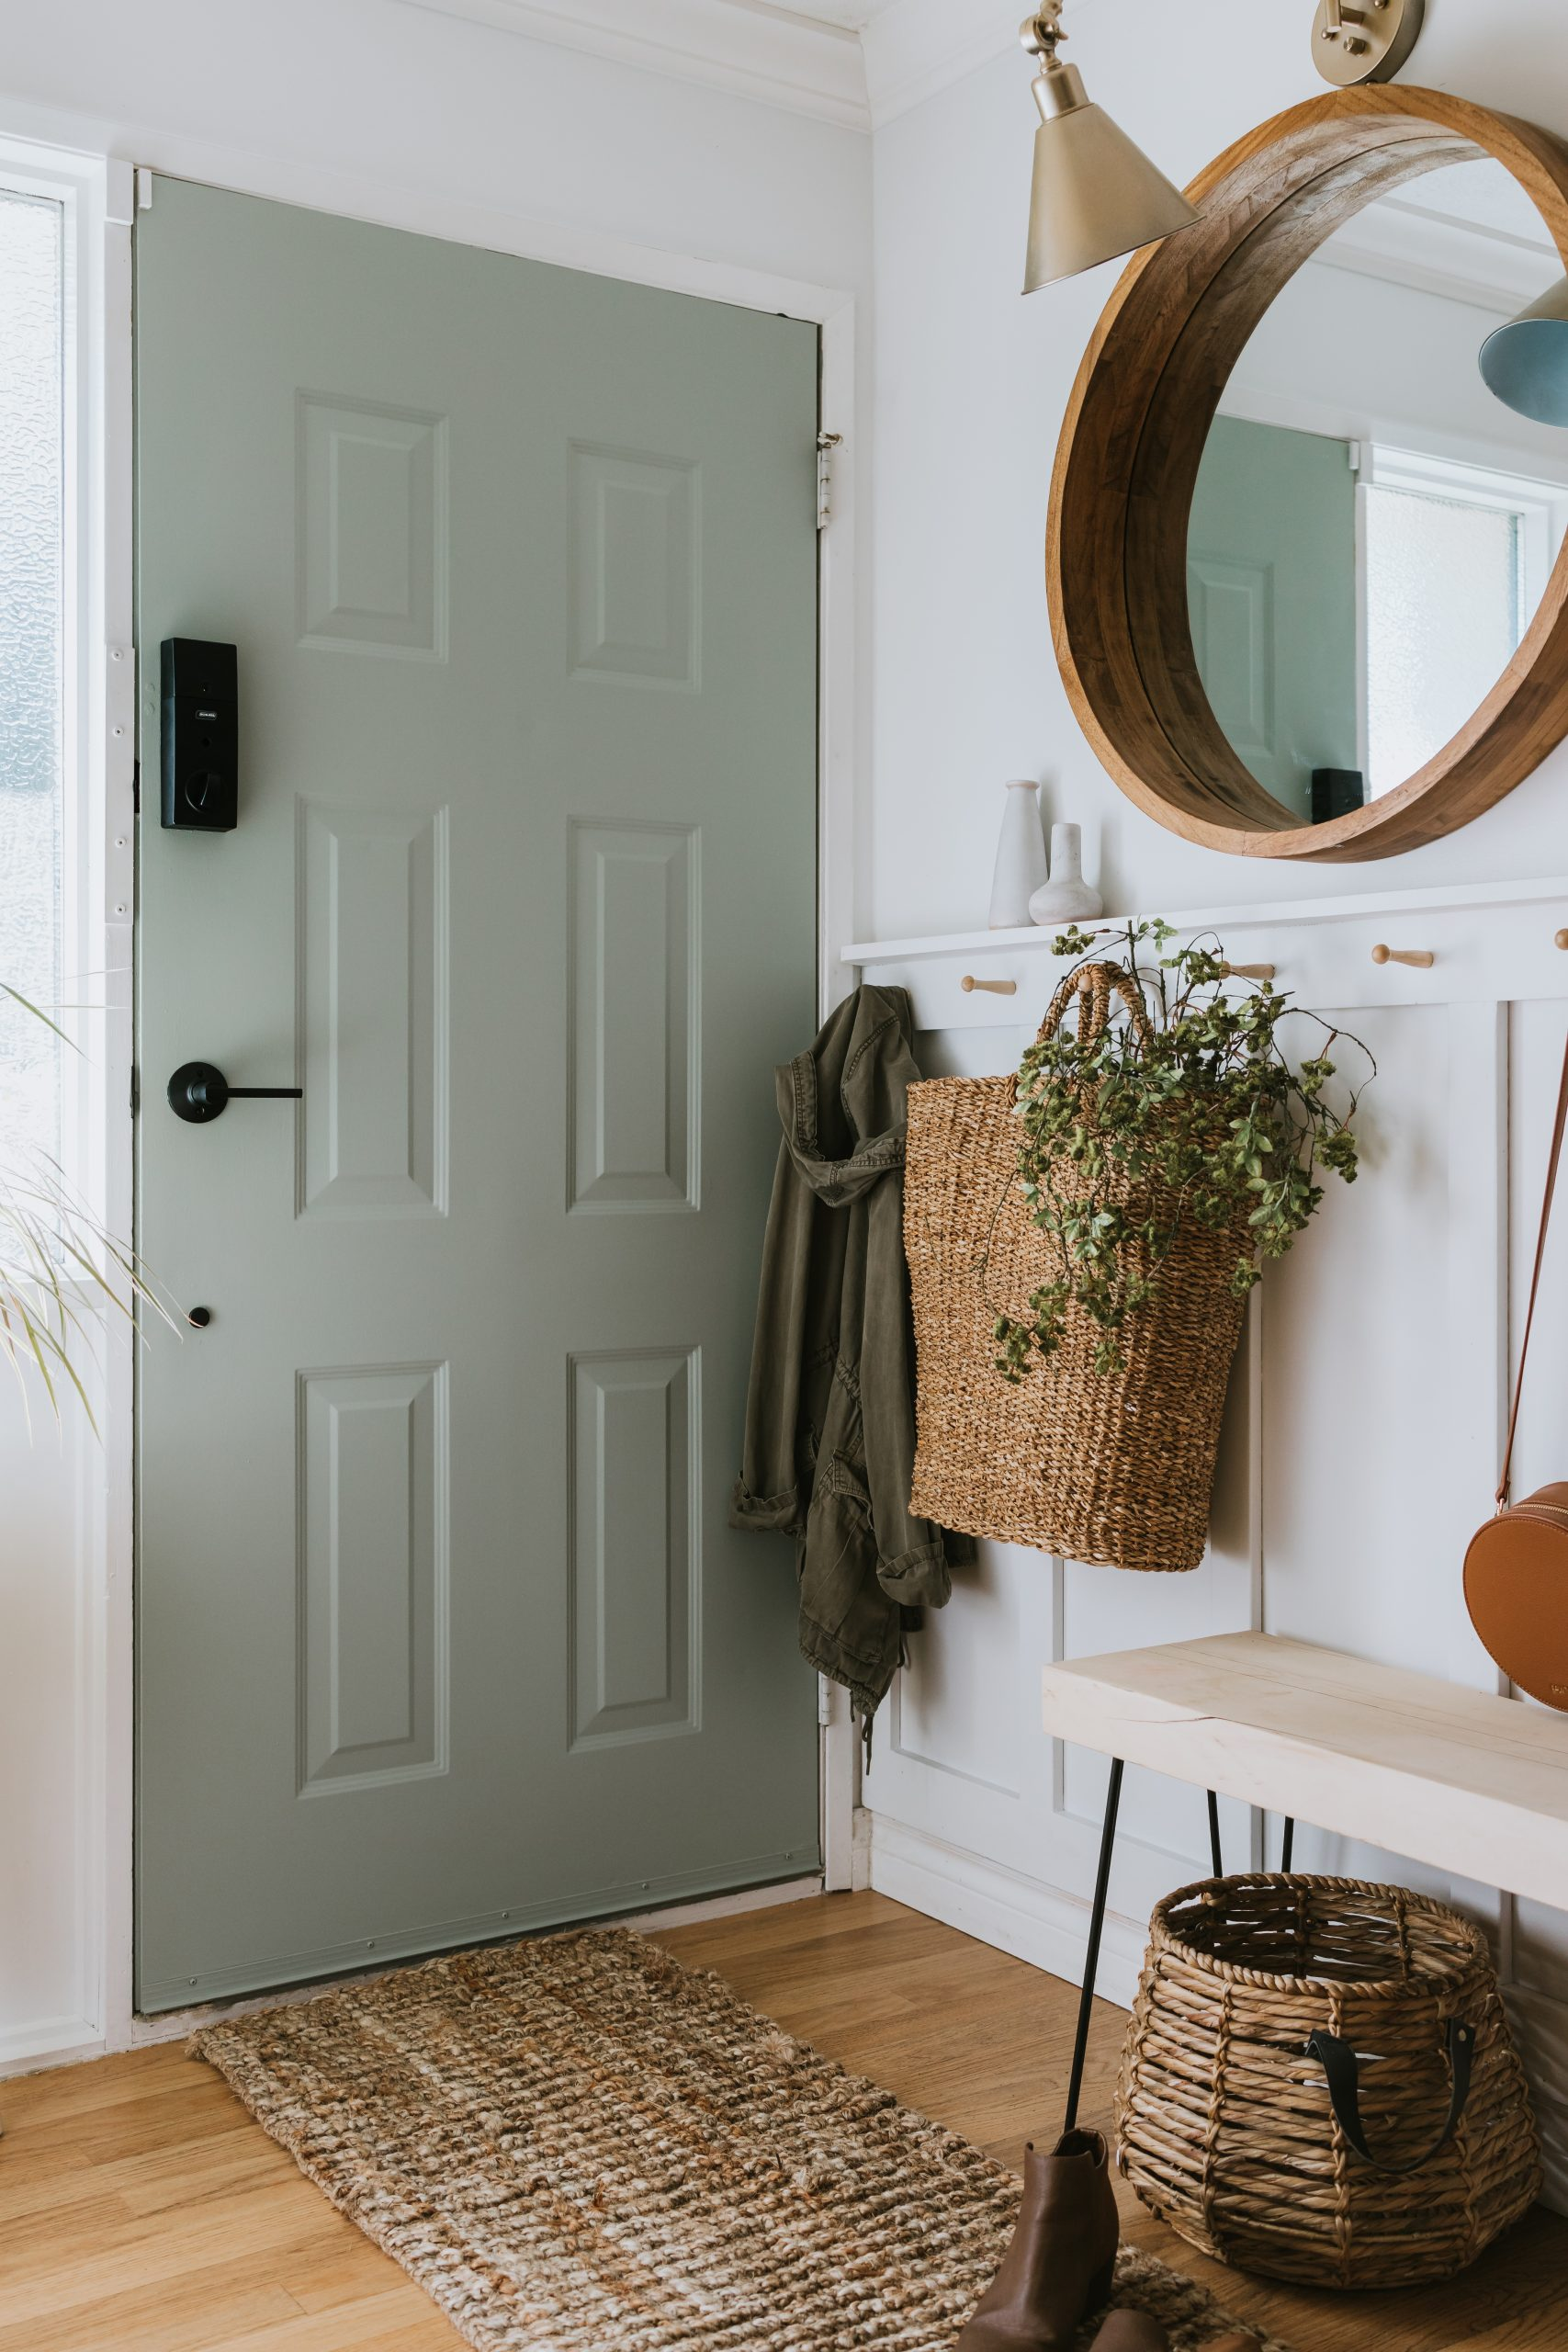 Our Sage Front Door and Painting Tips. Learn my simple tips to get a professional finish. Many are making simple mistakes that they aren't aware of!